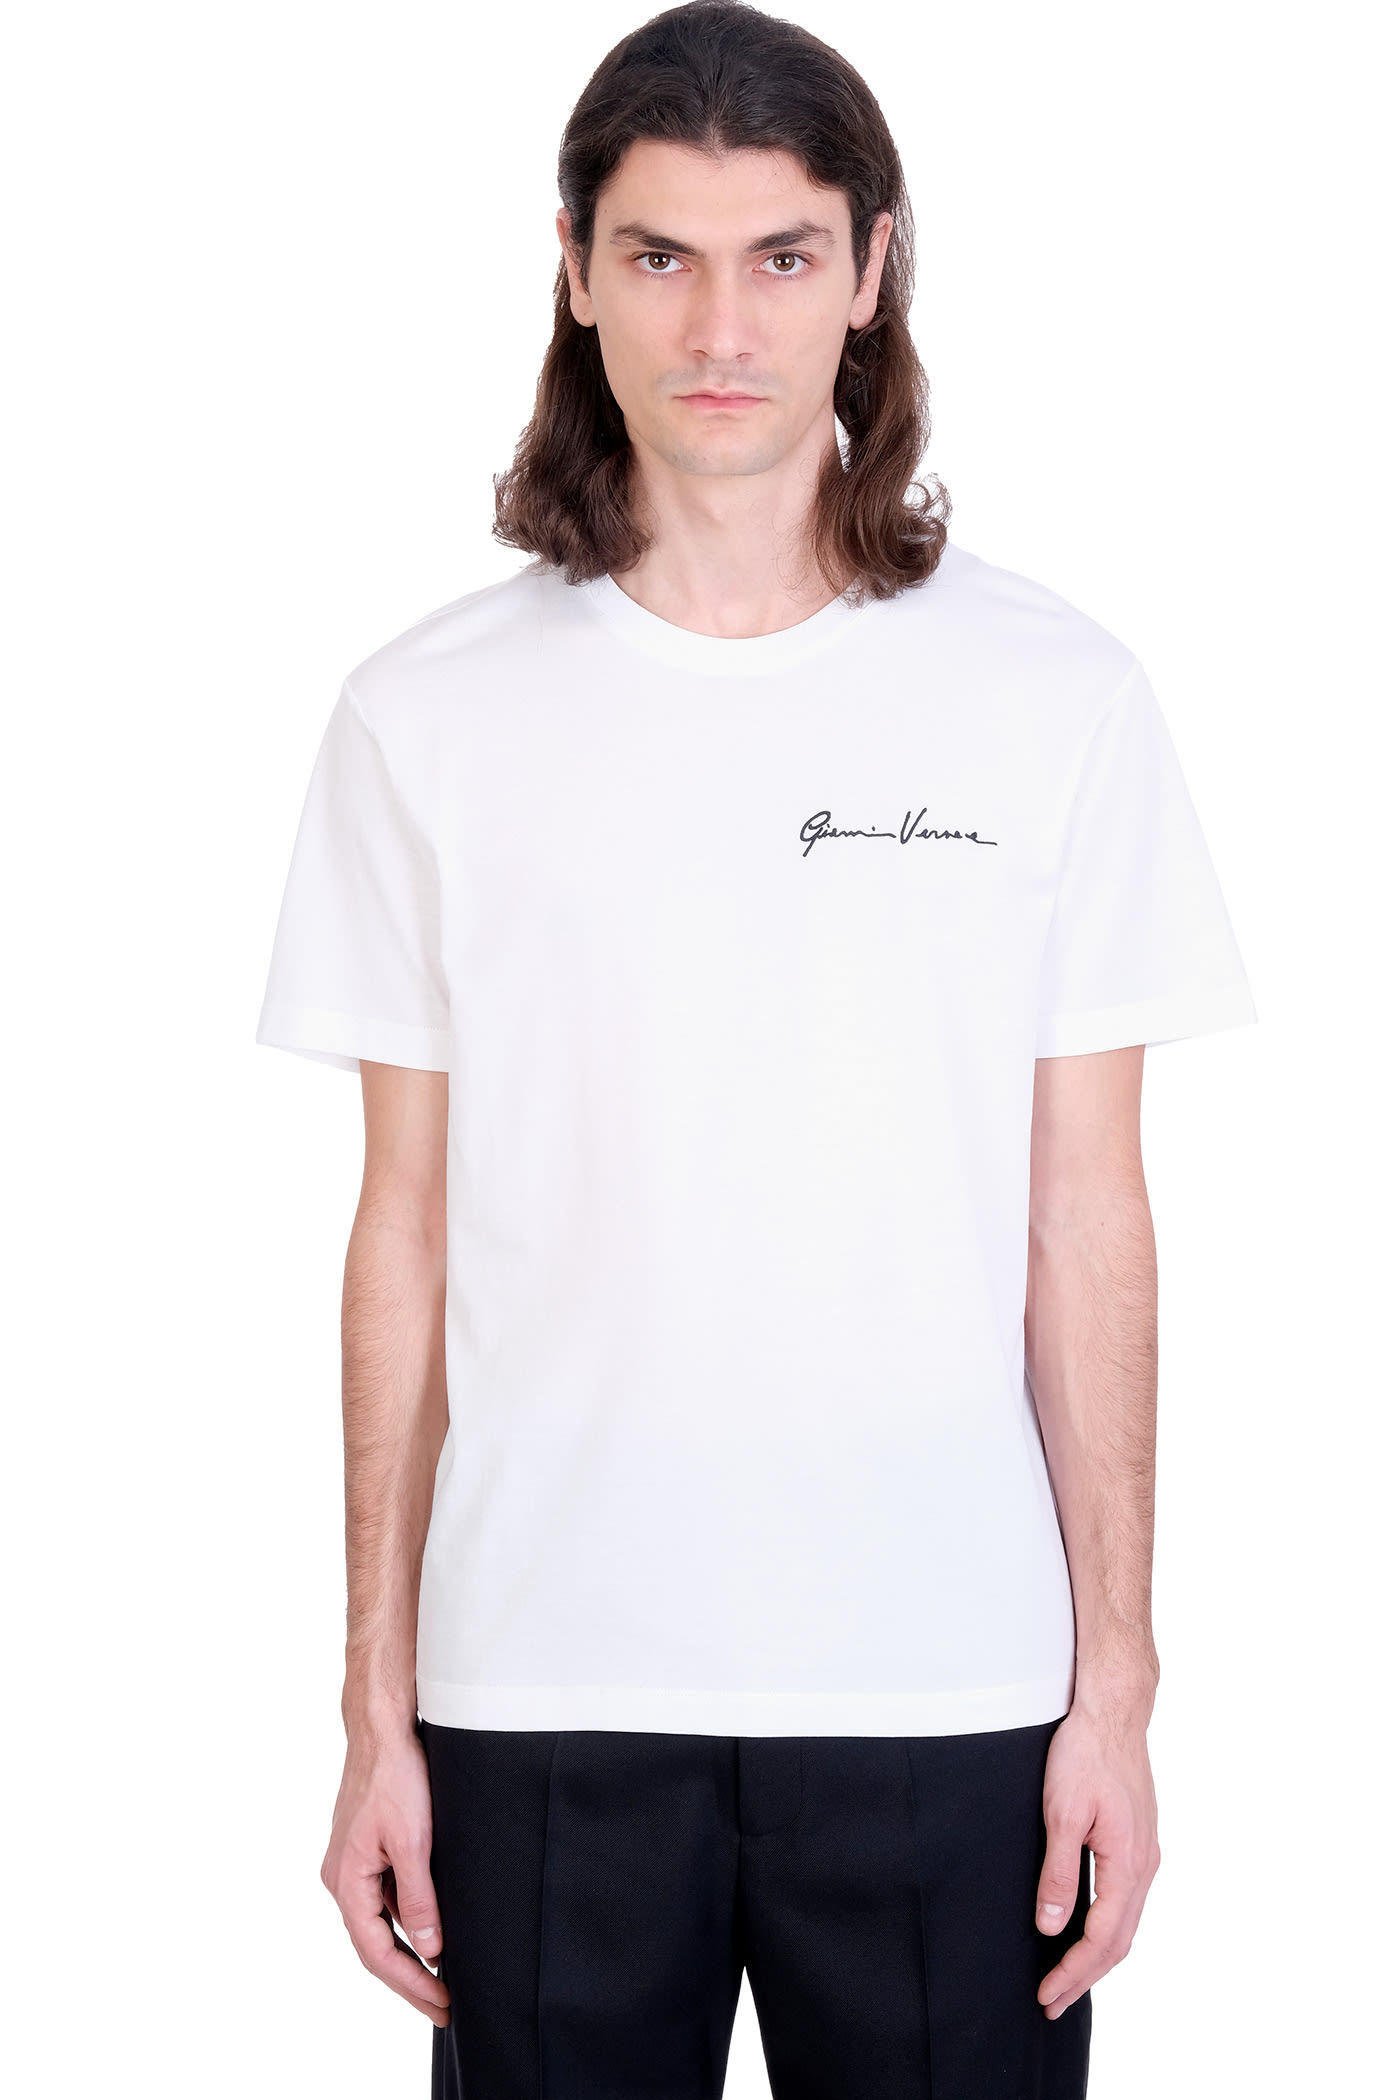 Versace T-SHIRT IN WHITE COTTON